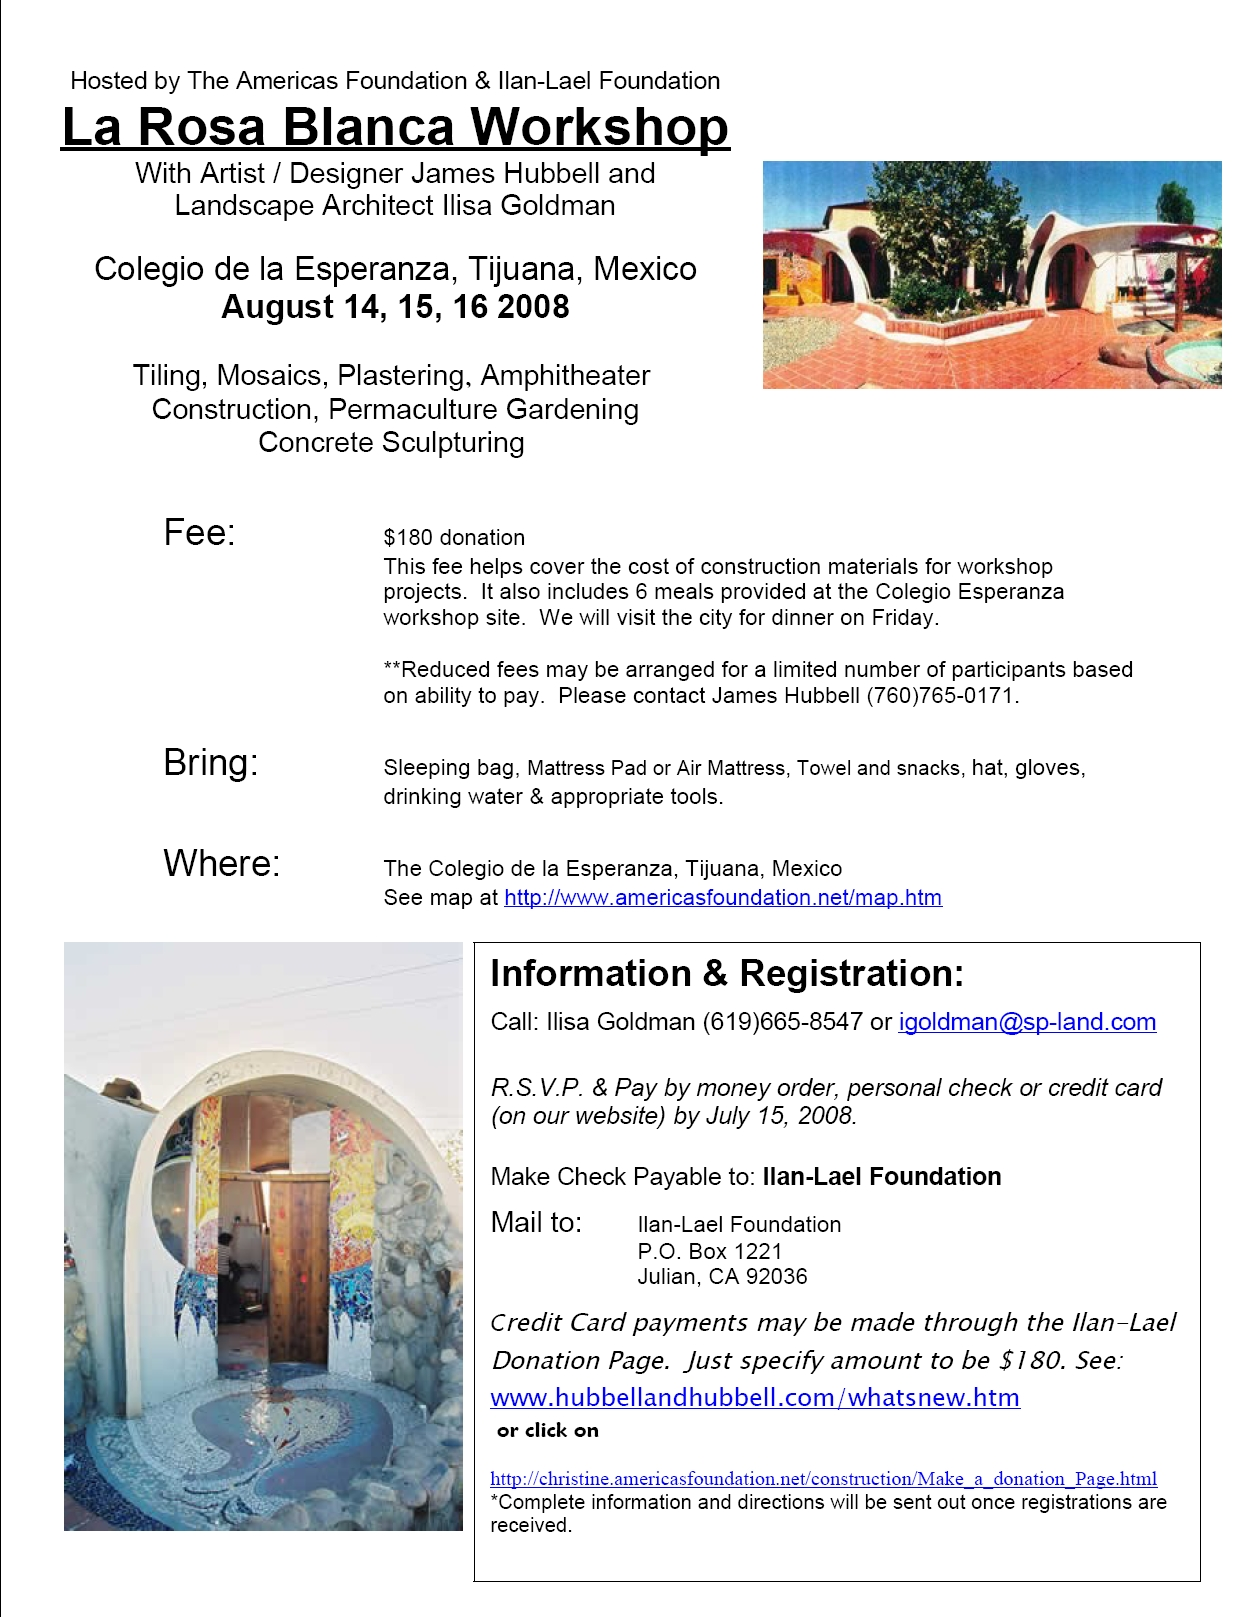 La Rosa Blanca 2008 Flyer linked to Registration Form